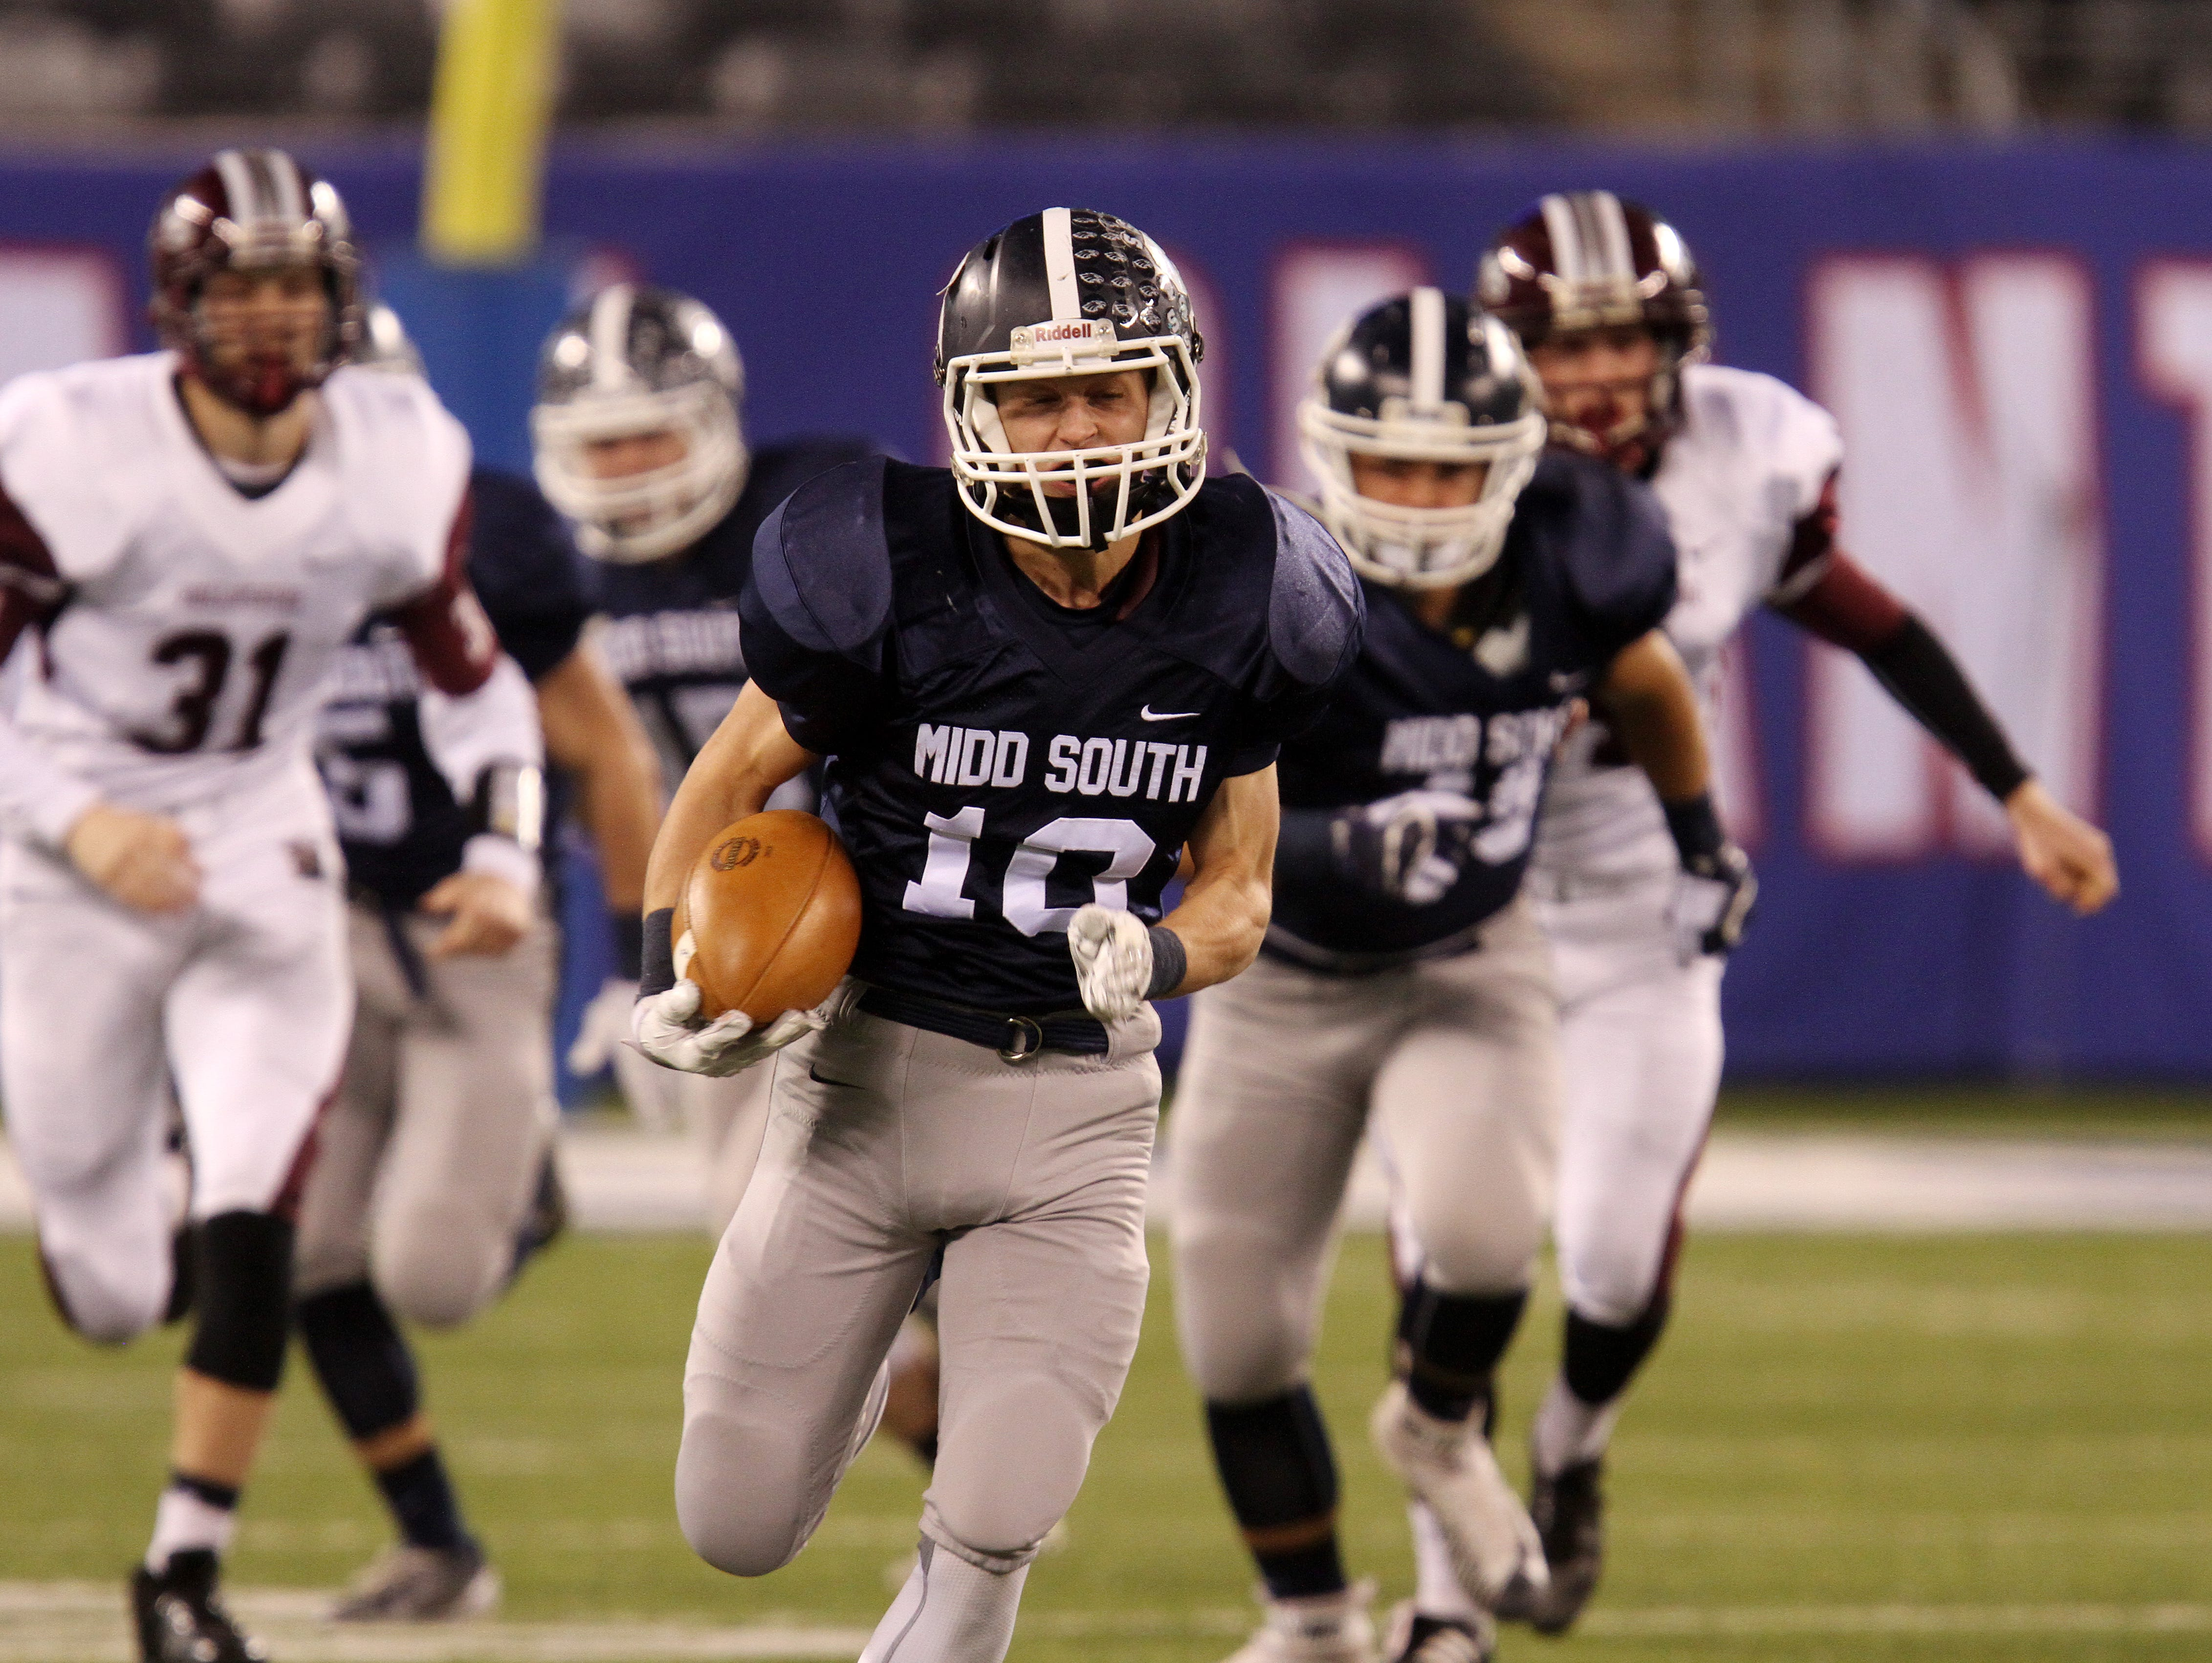 Middletown South's #10 Jeff Lewandowski makes a run early in the first quarter against Phillipsburg High School during the North 2 Group IV game of the 2015 NJSIAA/MetLife Stadium High School Football Championships at MetLife Stadium in East Rutherford, NJ Saturday December 5, 2015.